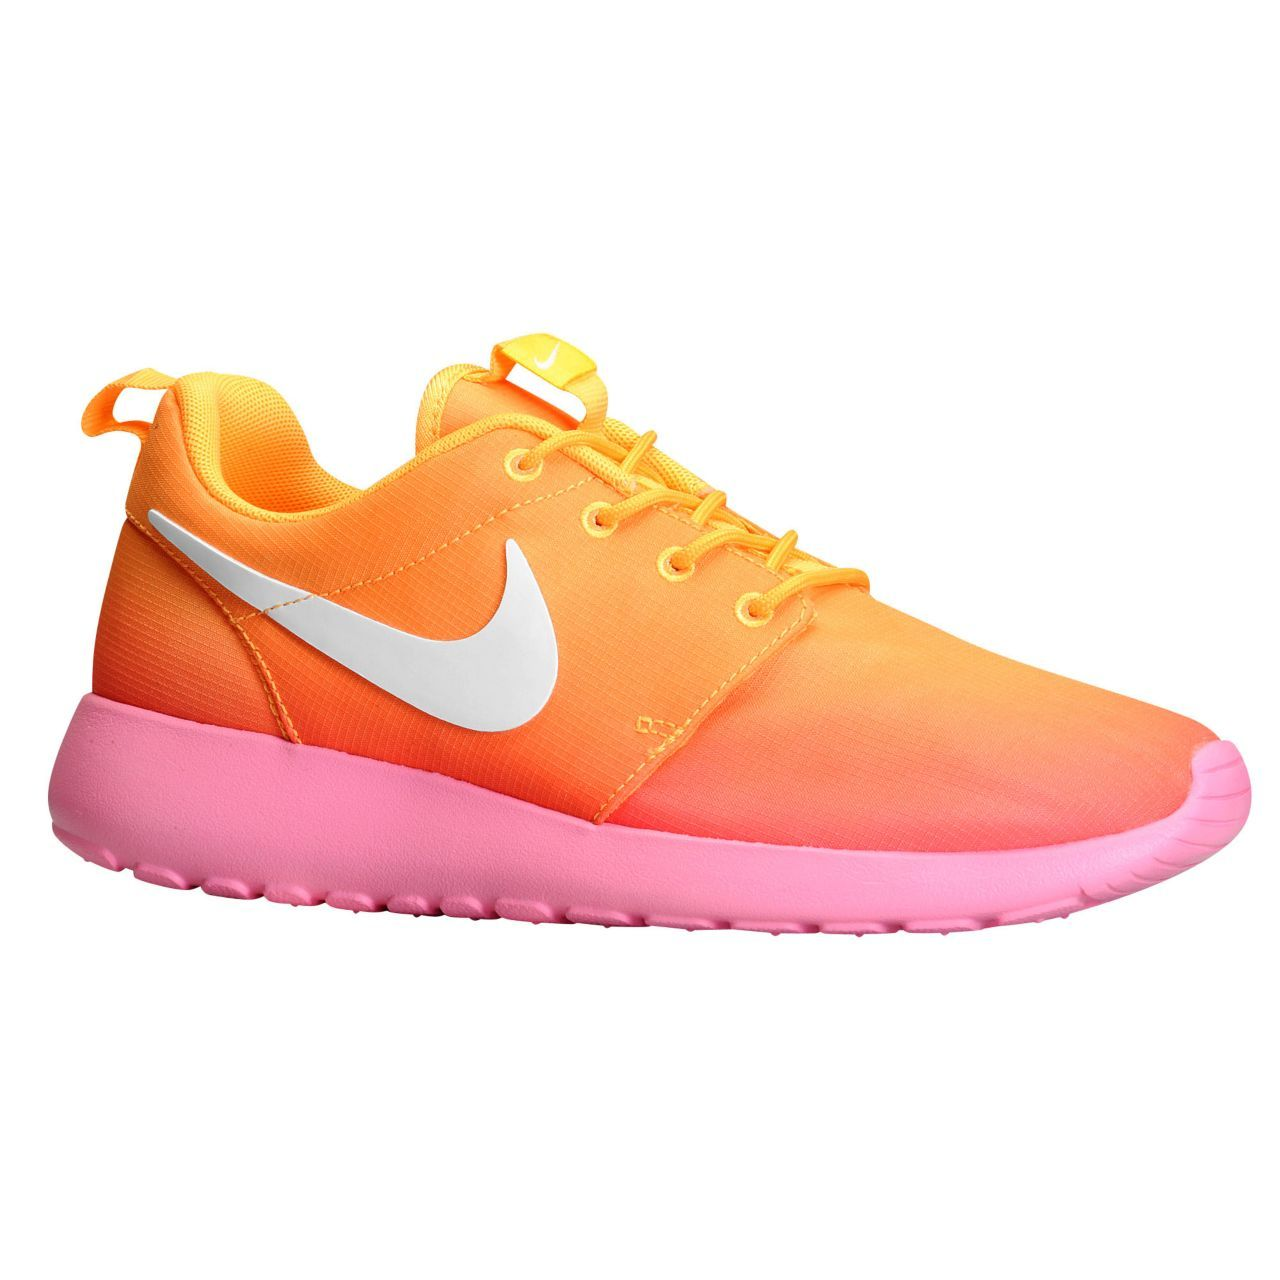 new product c18fb 4b677 Nike Femme Roshe One Orange Rose Chaussure